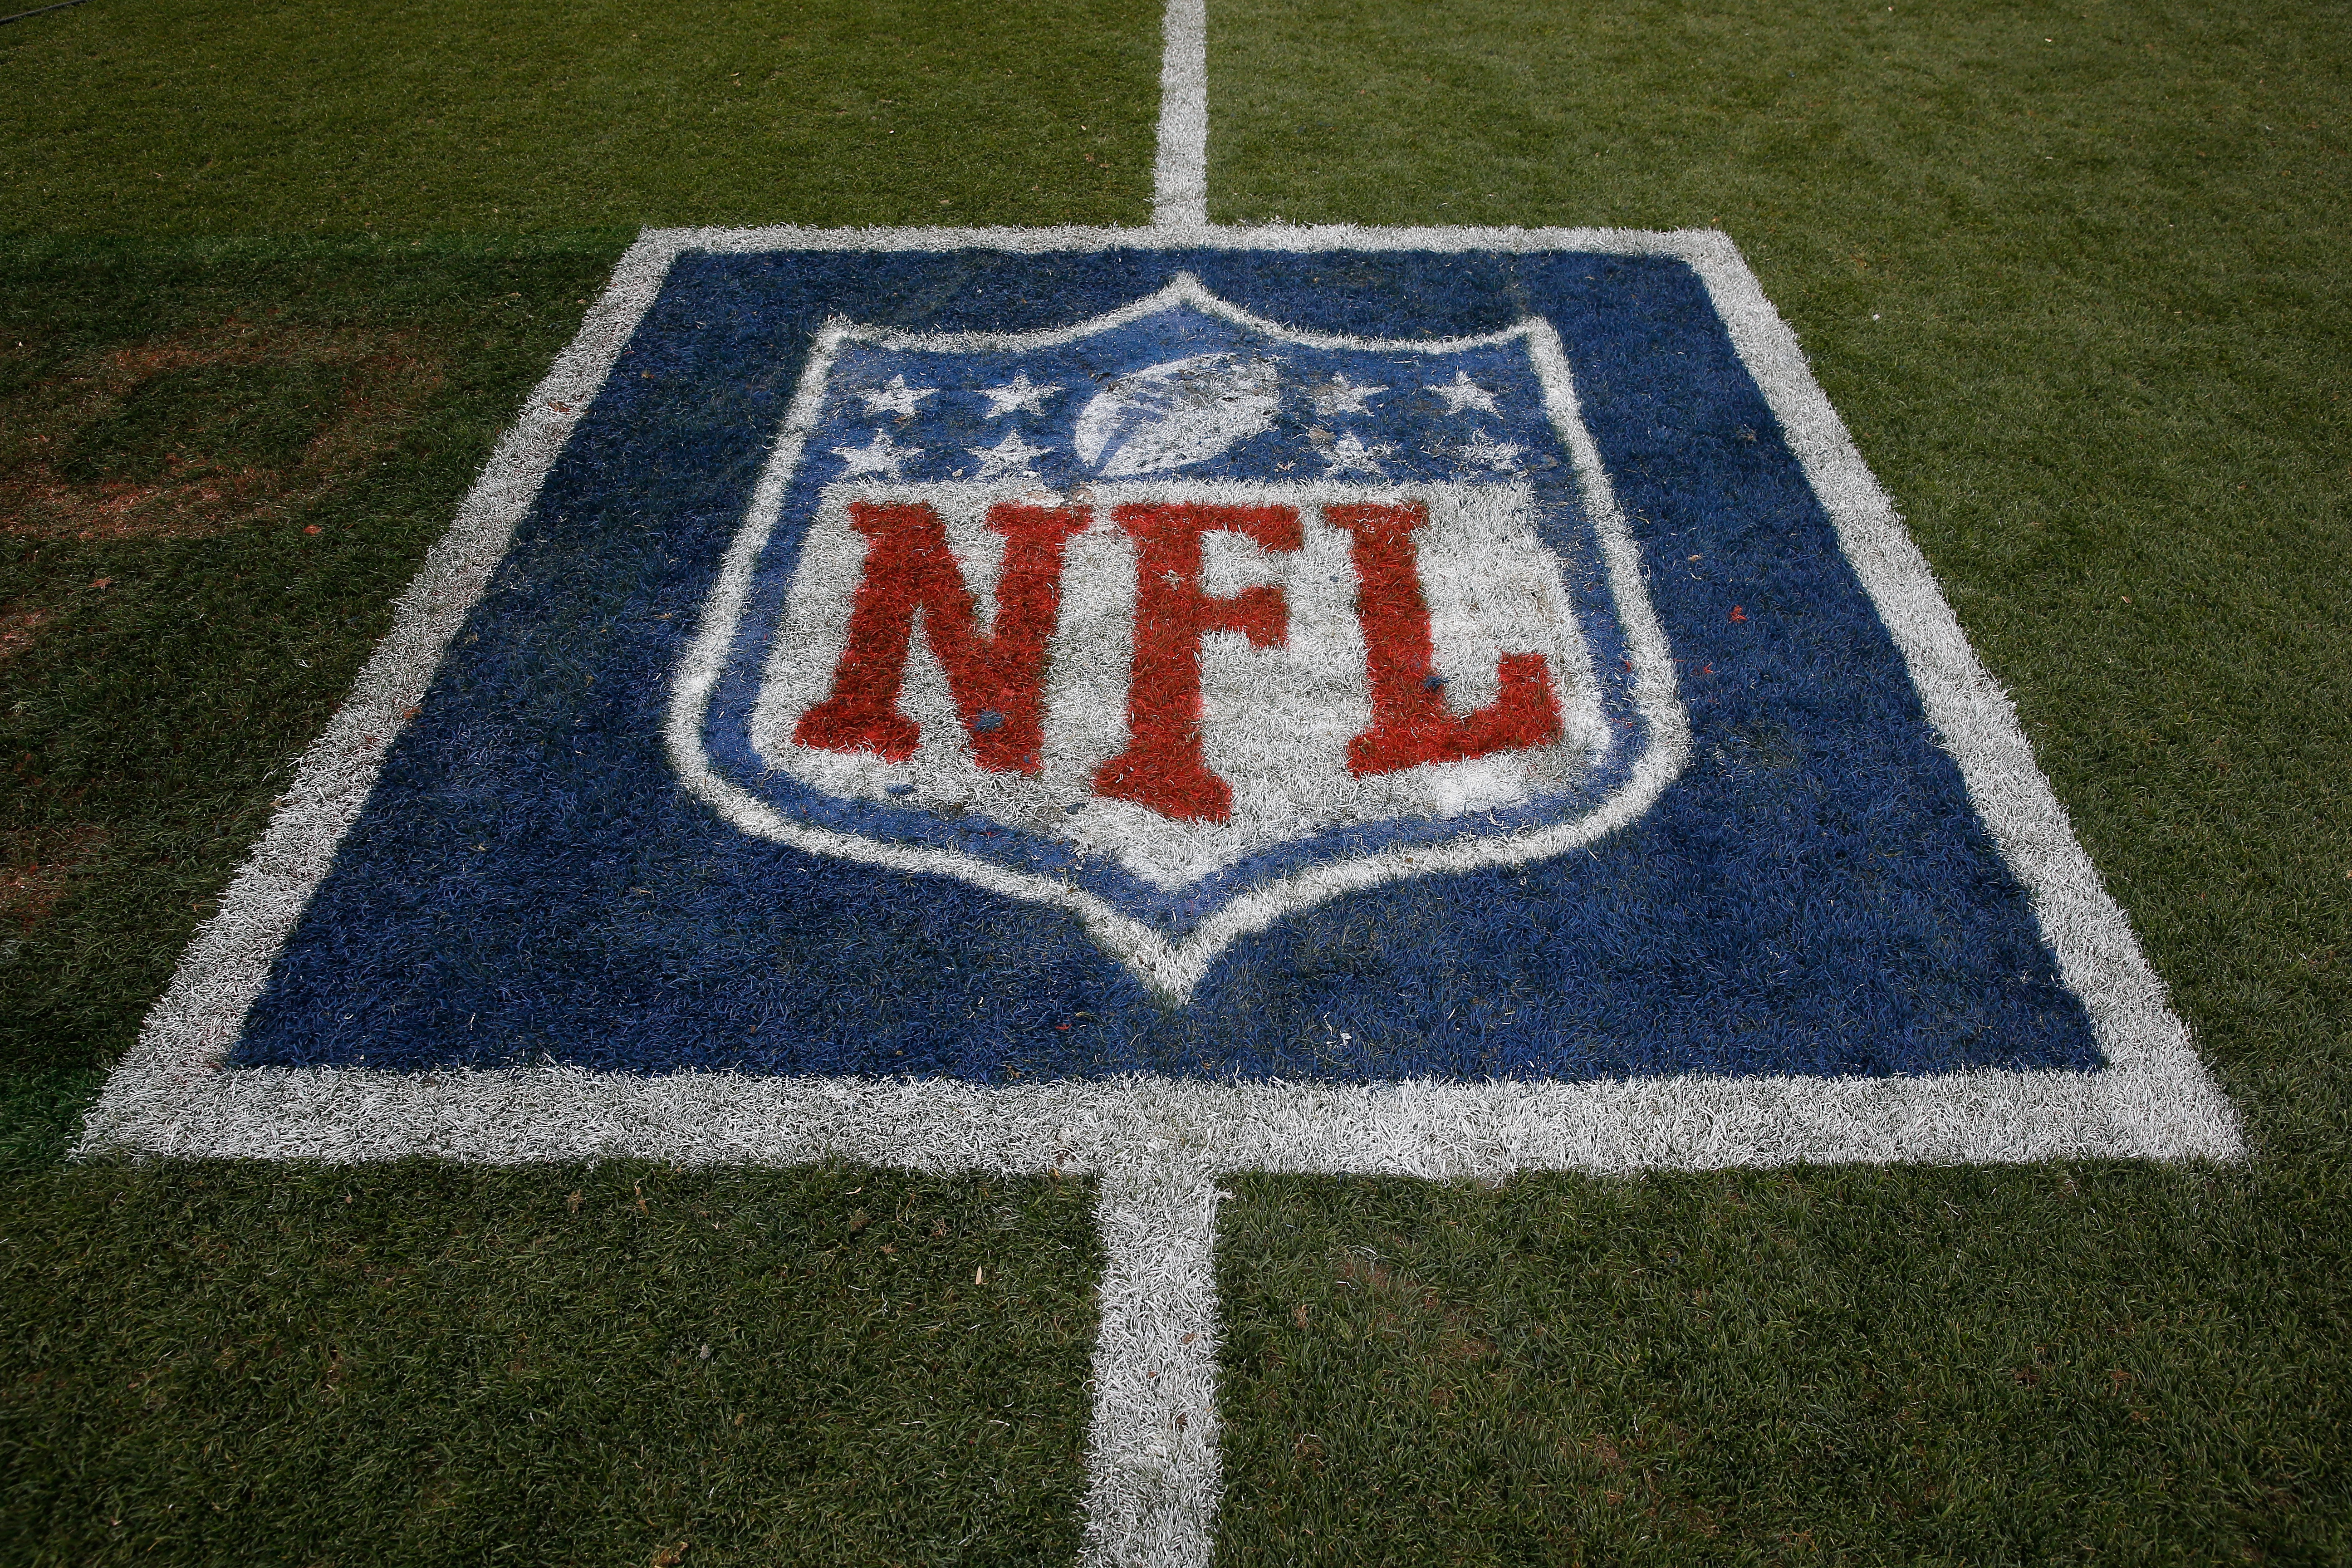 The NFL logo is displayed on the turf on September 14, 2014.